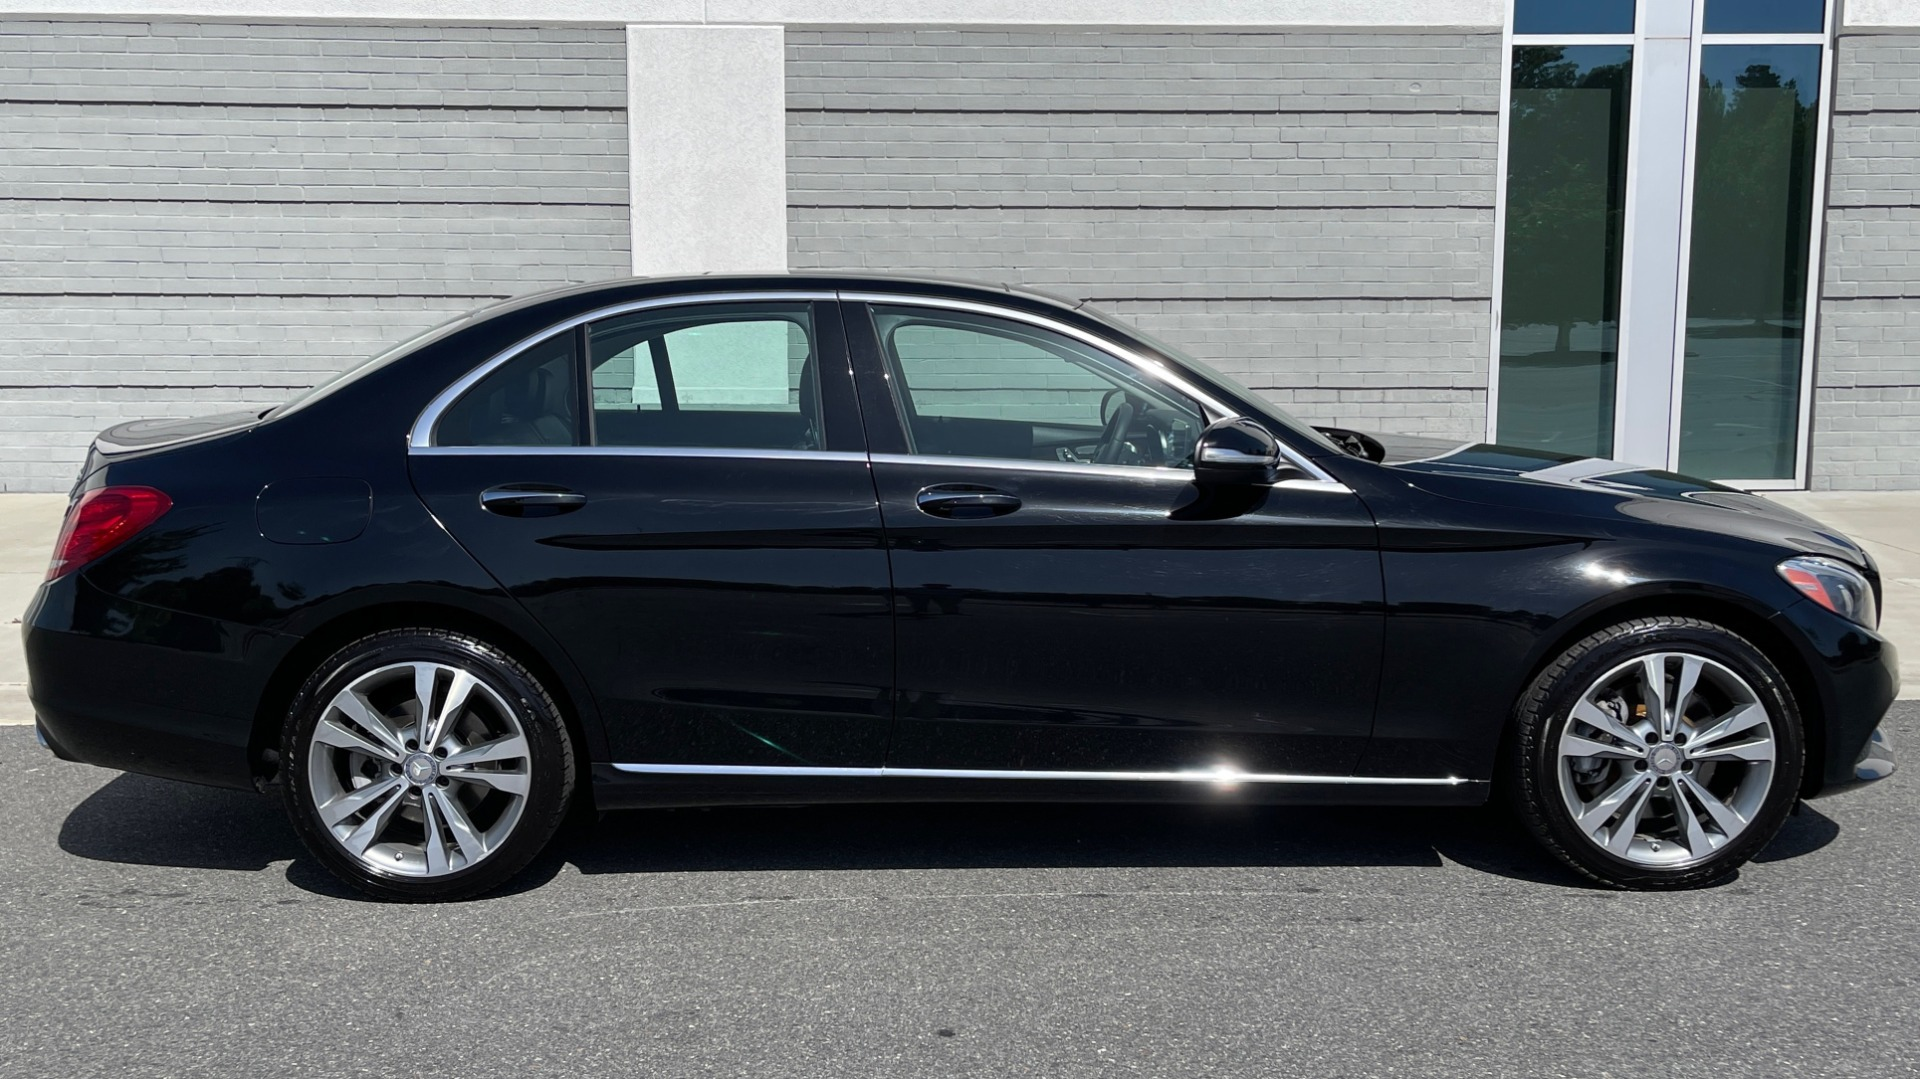 Used 2015 Mercedes-Benz C-CLASS C 300 4MATIC PREMIUM / MULTI MEDIA PKG / BSA / REARVIEW for sale $21,795 at Formula Imports in Charlotte NC 28227 7